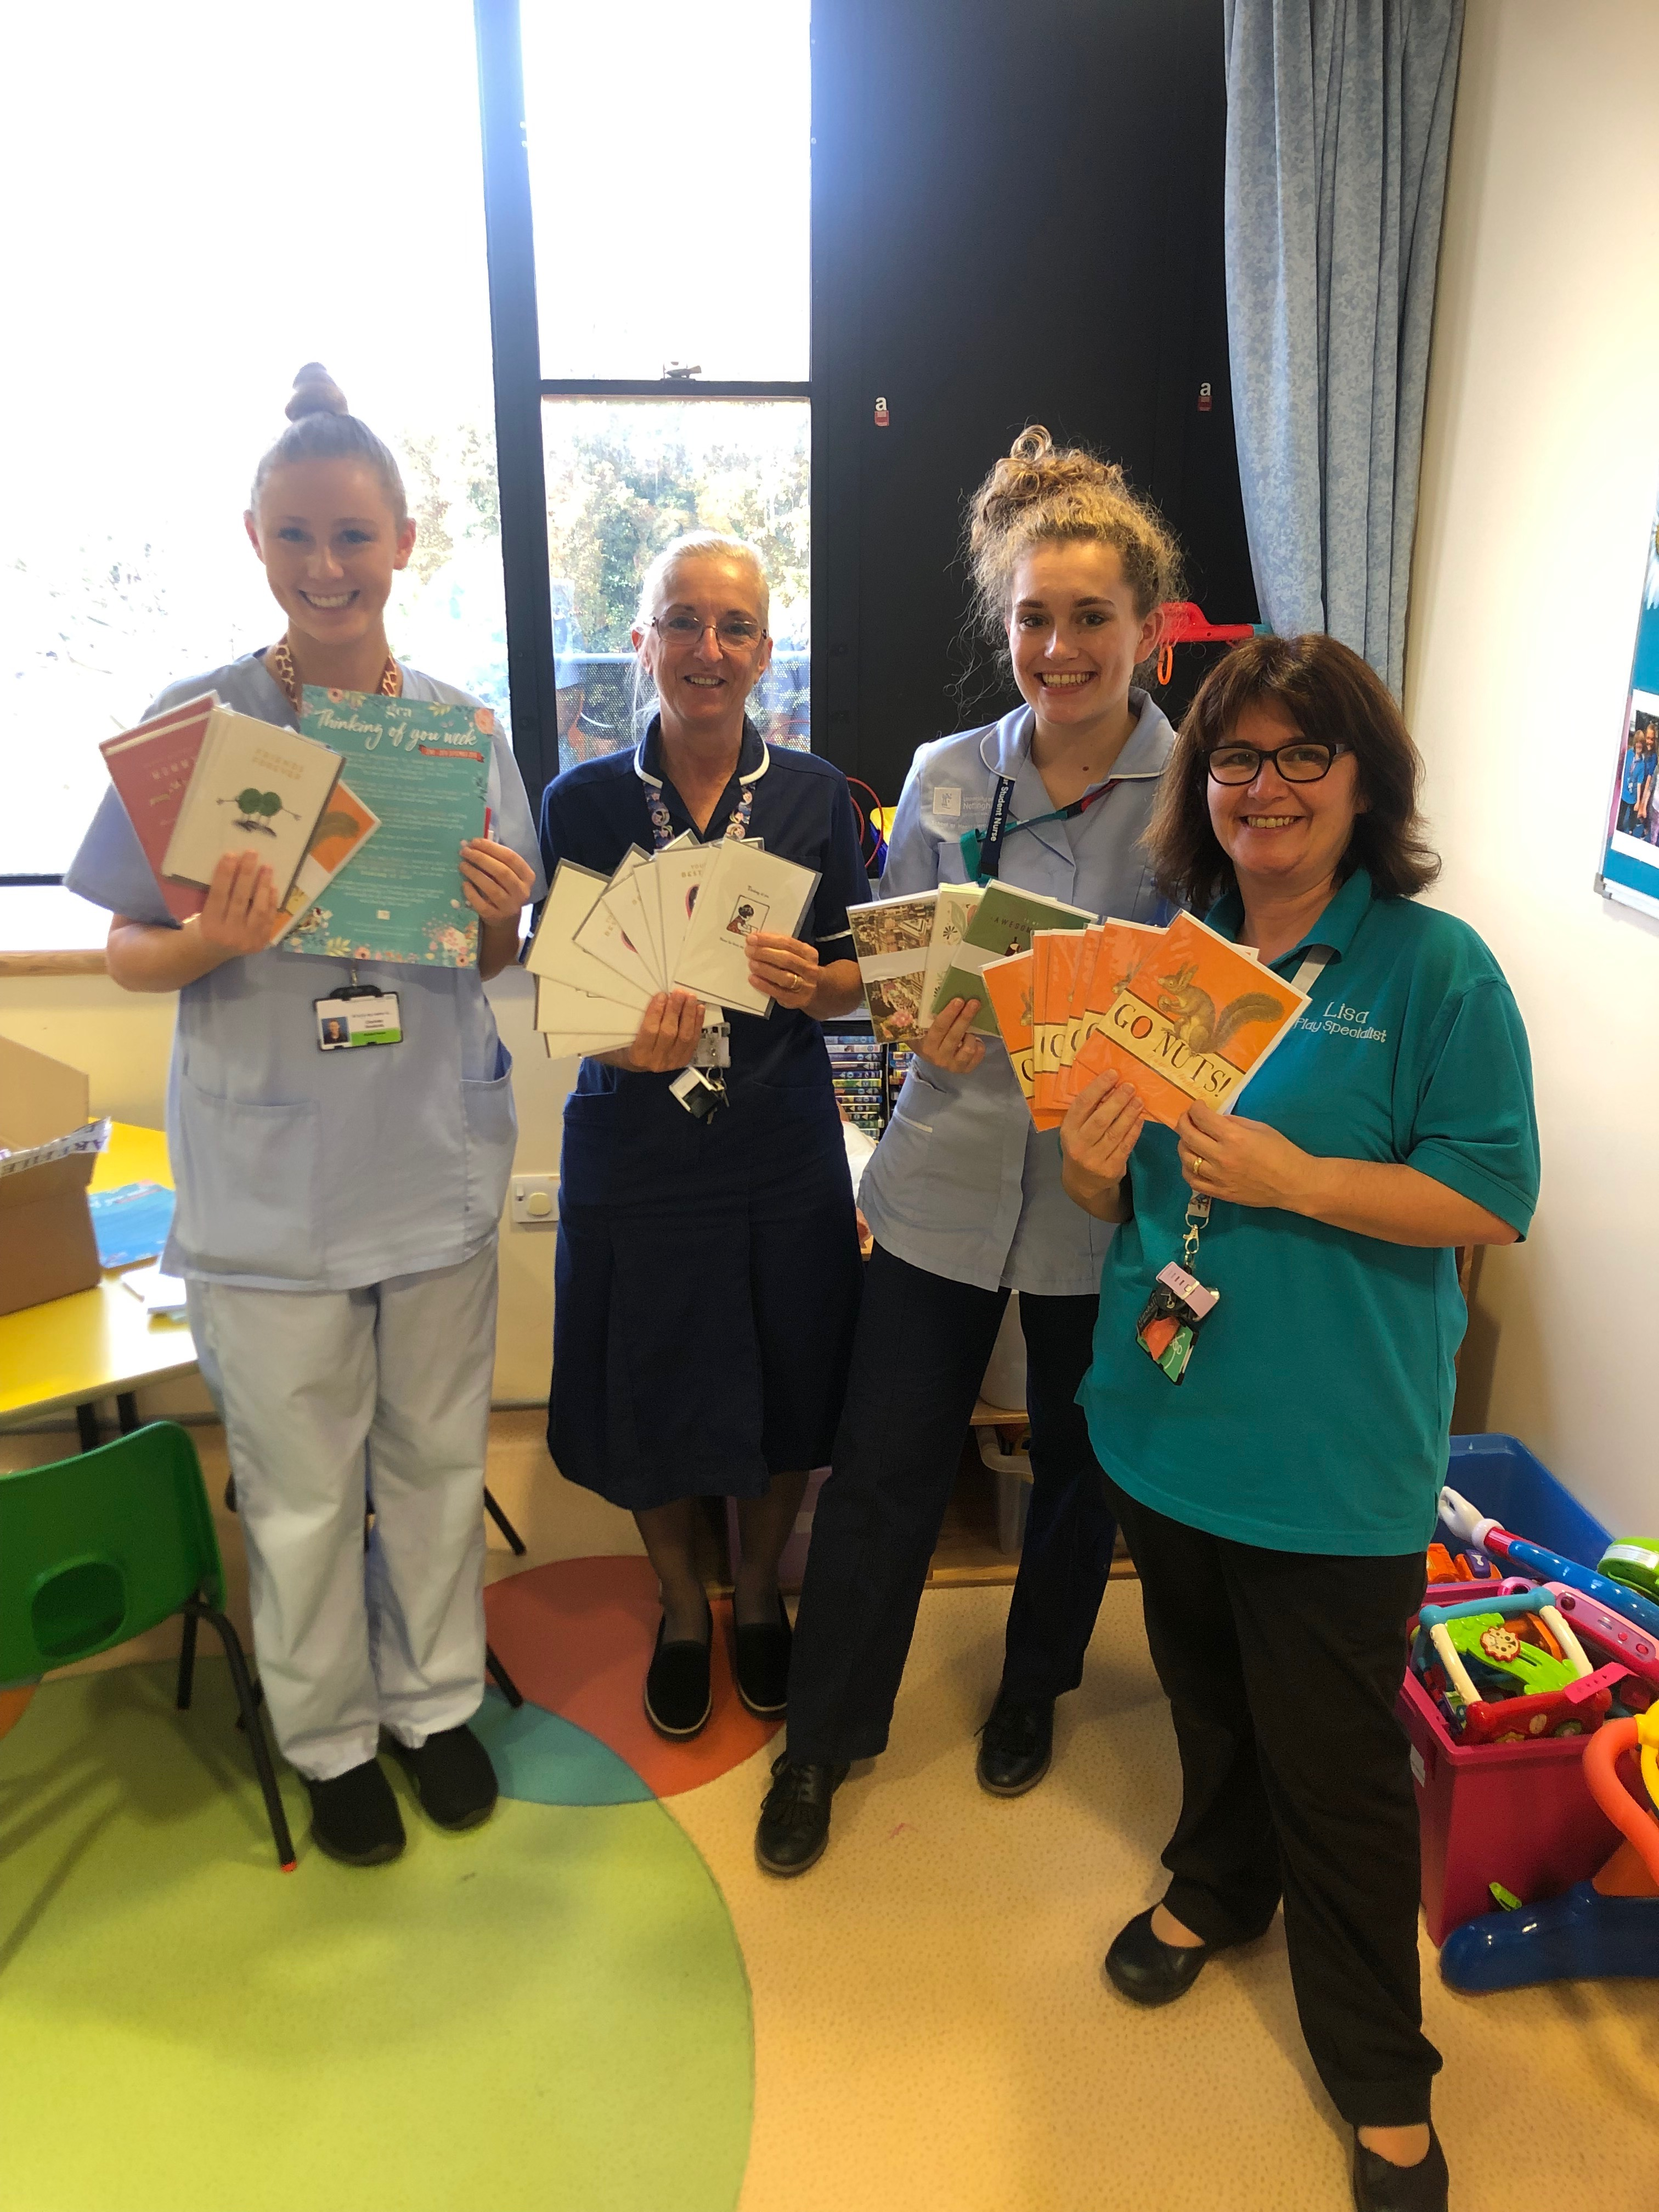 Above: Some of the nursing staff in Nottingham Children's Hospital who have been involved in The Art File's Thinking of You Week activity.